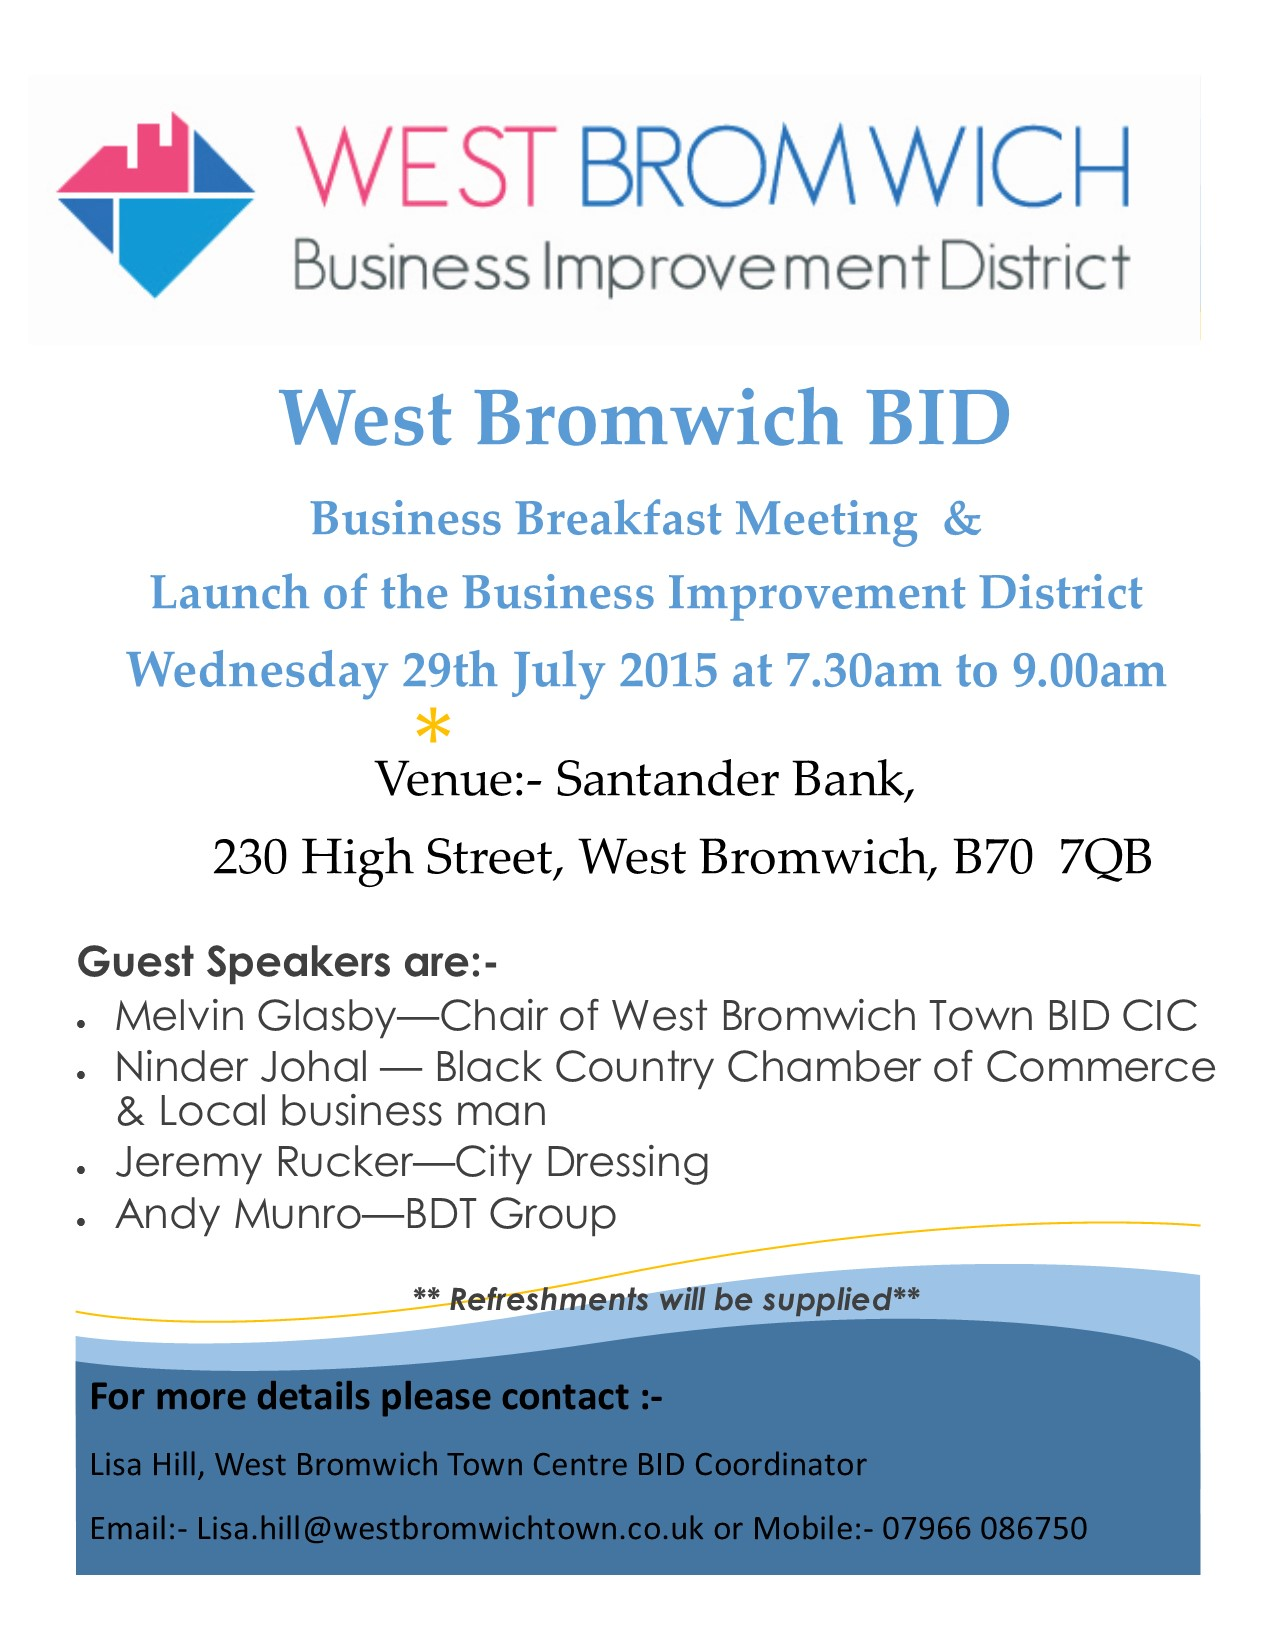 West Bromwich Town BID CIC would like to invite you to our Business Breakfast Meeting & Launch of the Business Improvement District